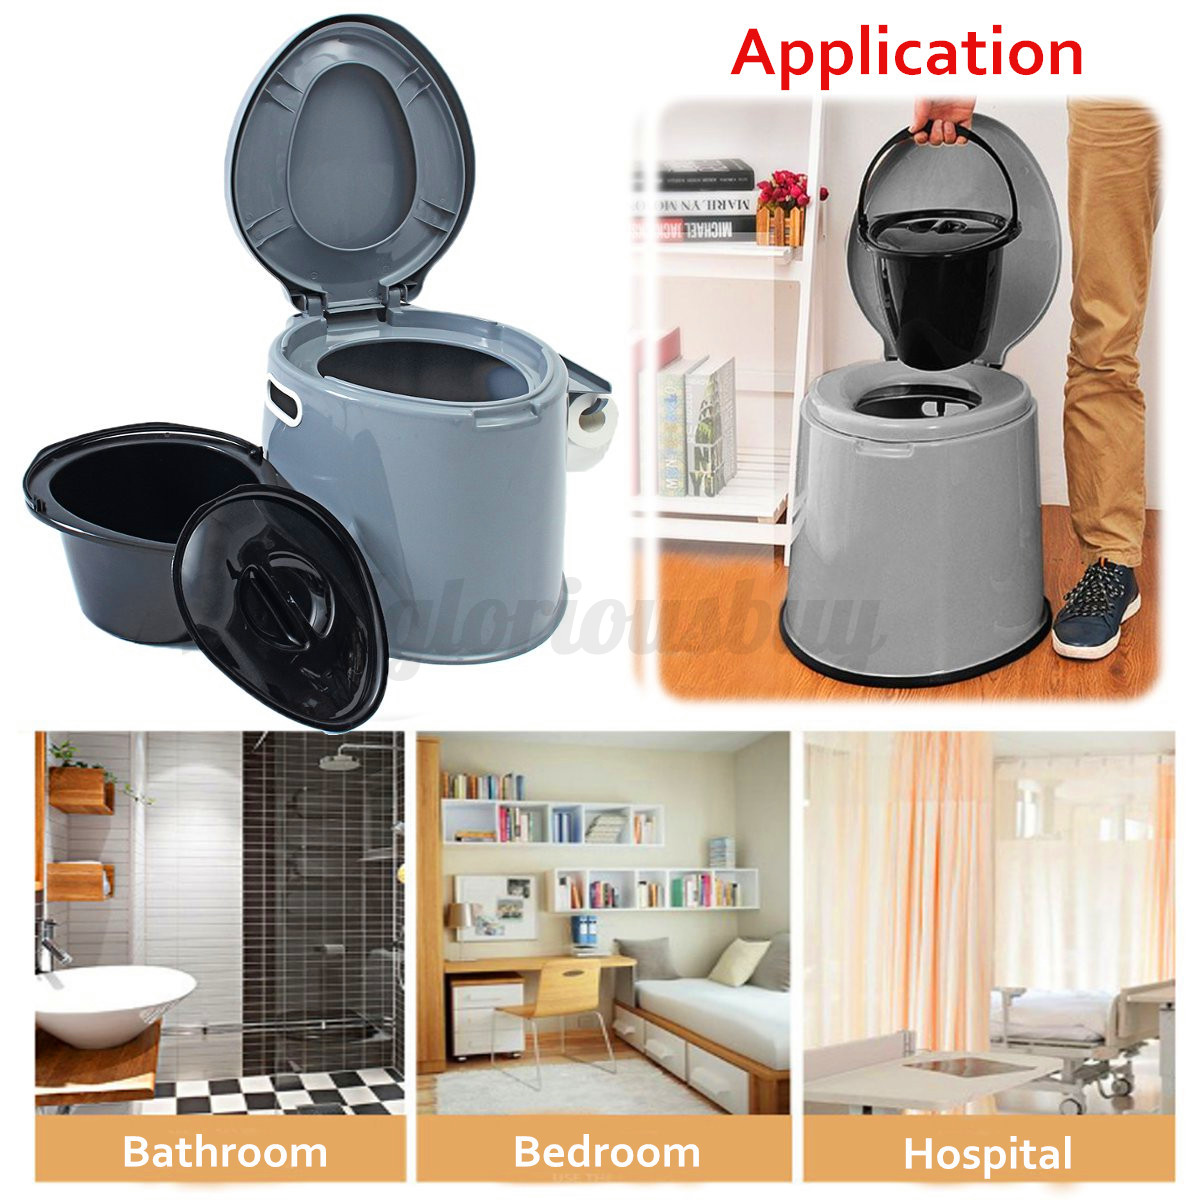 Portable Large Toilet Flush Travel Camping  Hiking Outdoor Indoor Potty Commode !  70% off